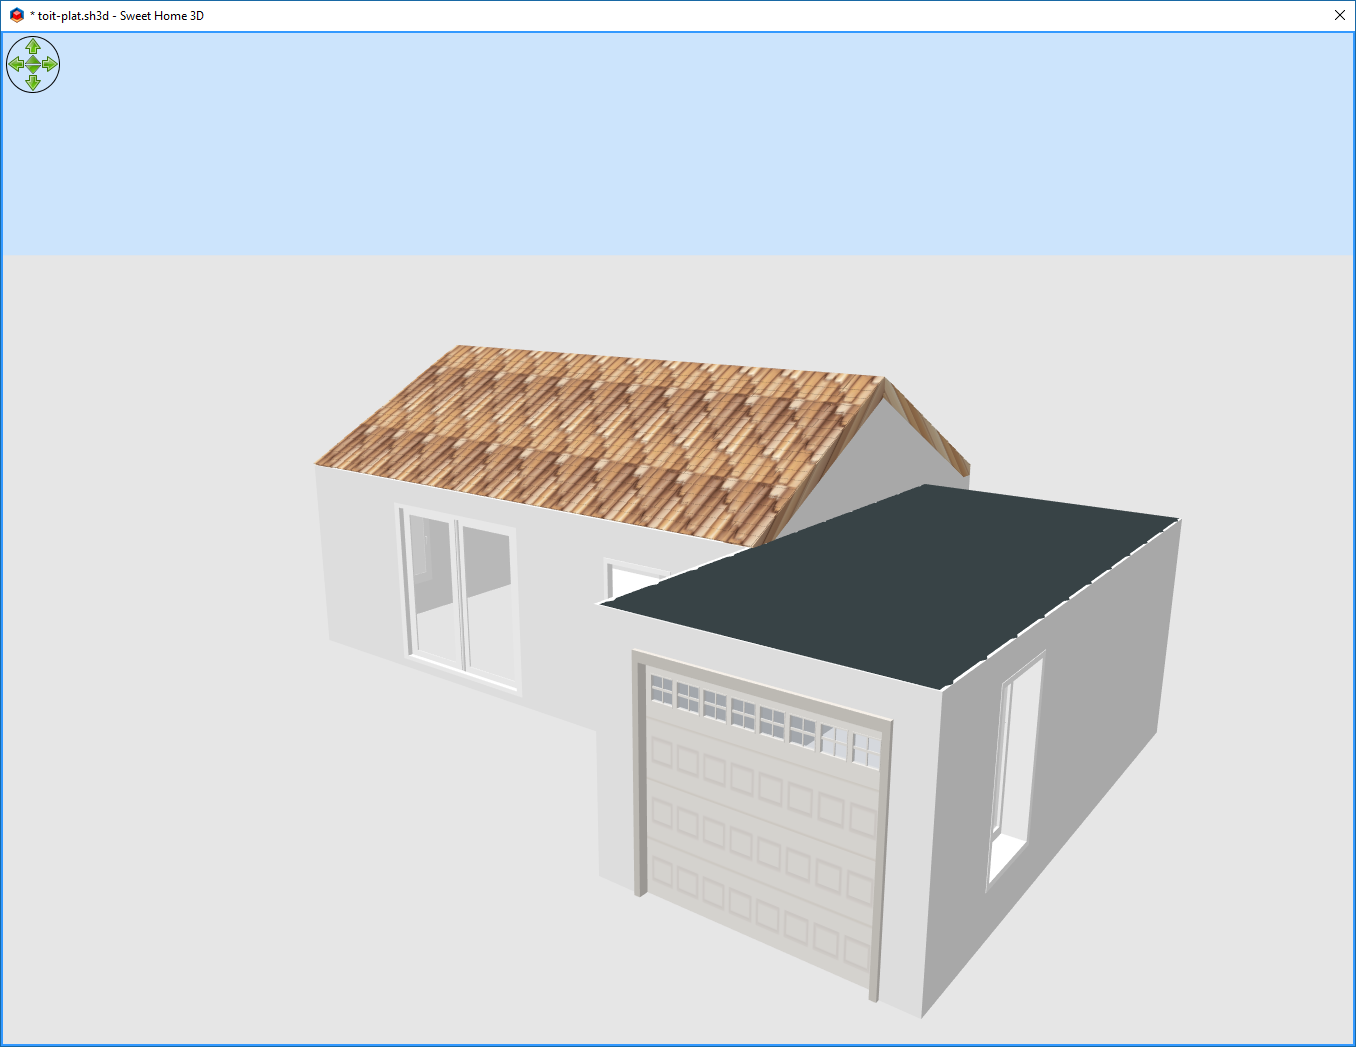 Comment faire un toit plat dans sweet home 3d for Modeliser sa maison